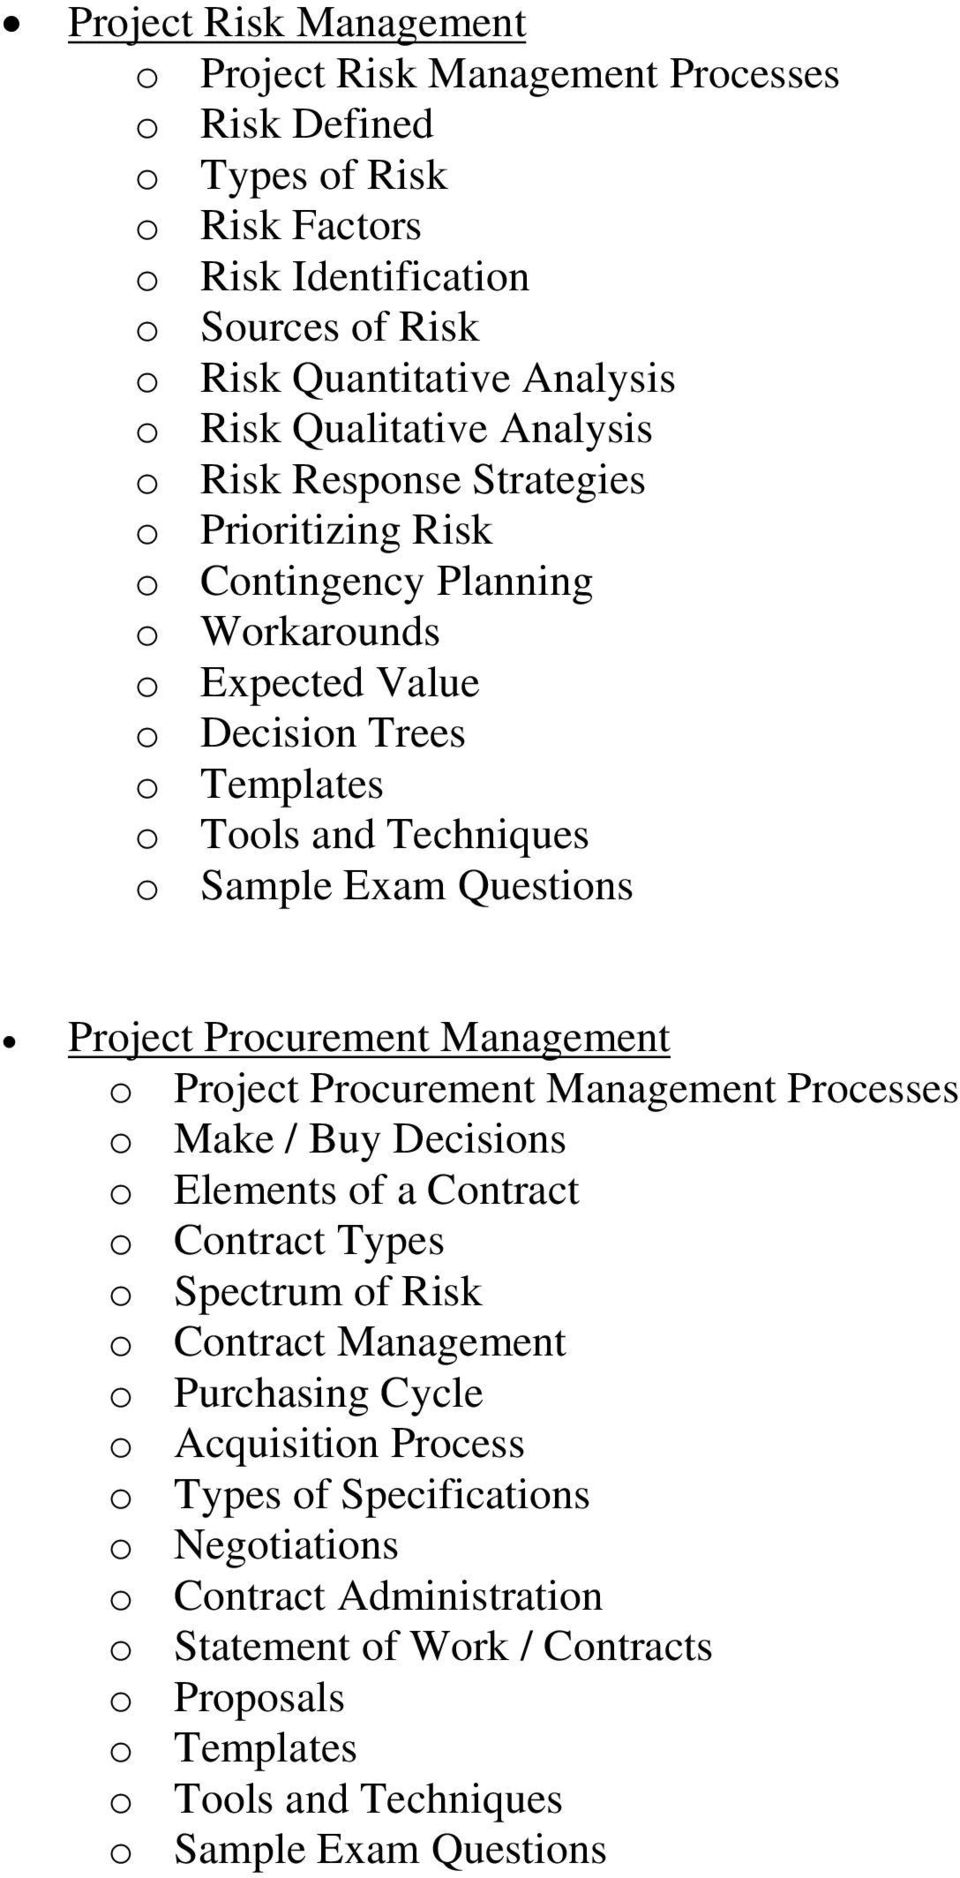 Trees Project Procurement Management o Project Procurement Management Processes o Make / Buy Decisions o Elements of a Contract o Contract Types o Spectrum of